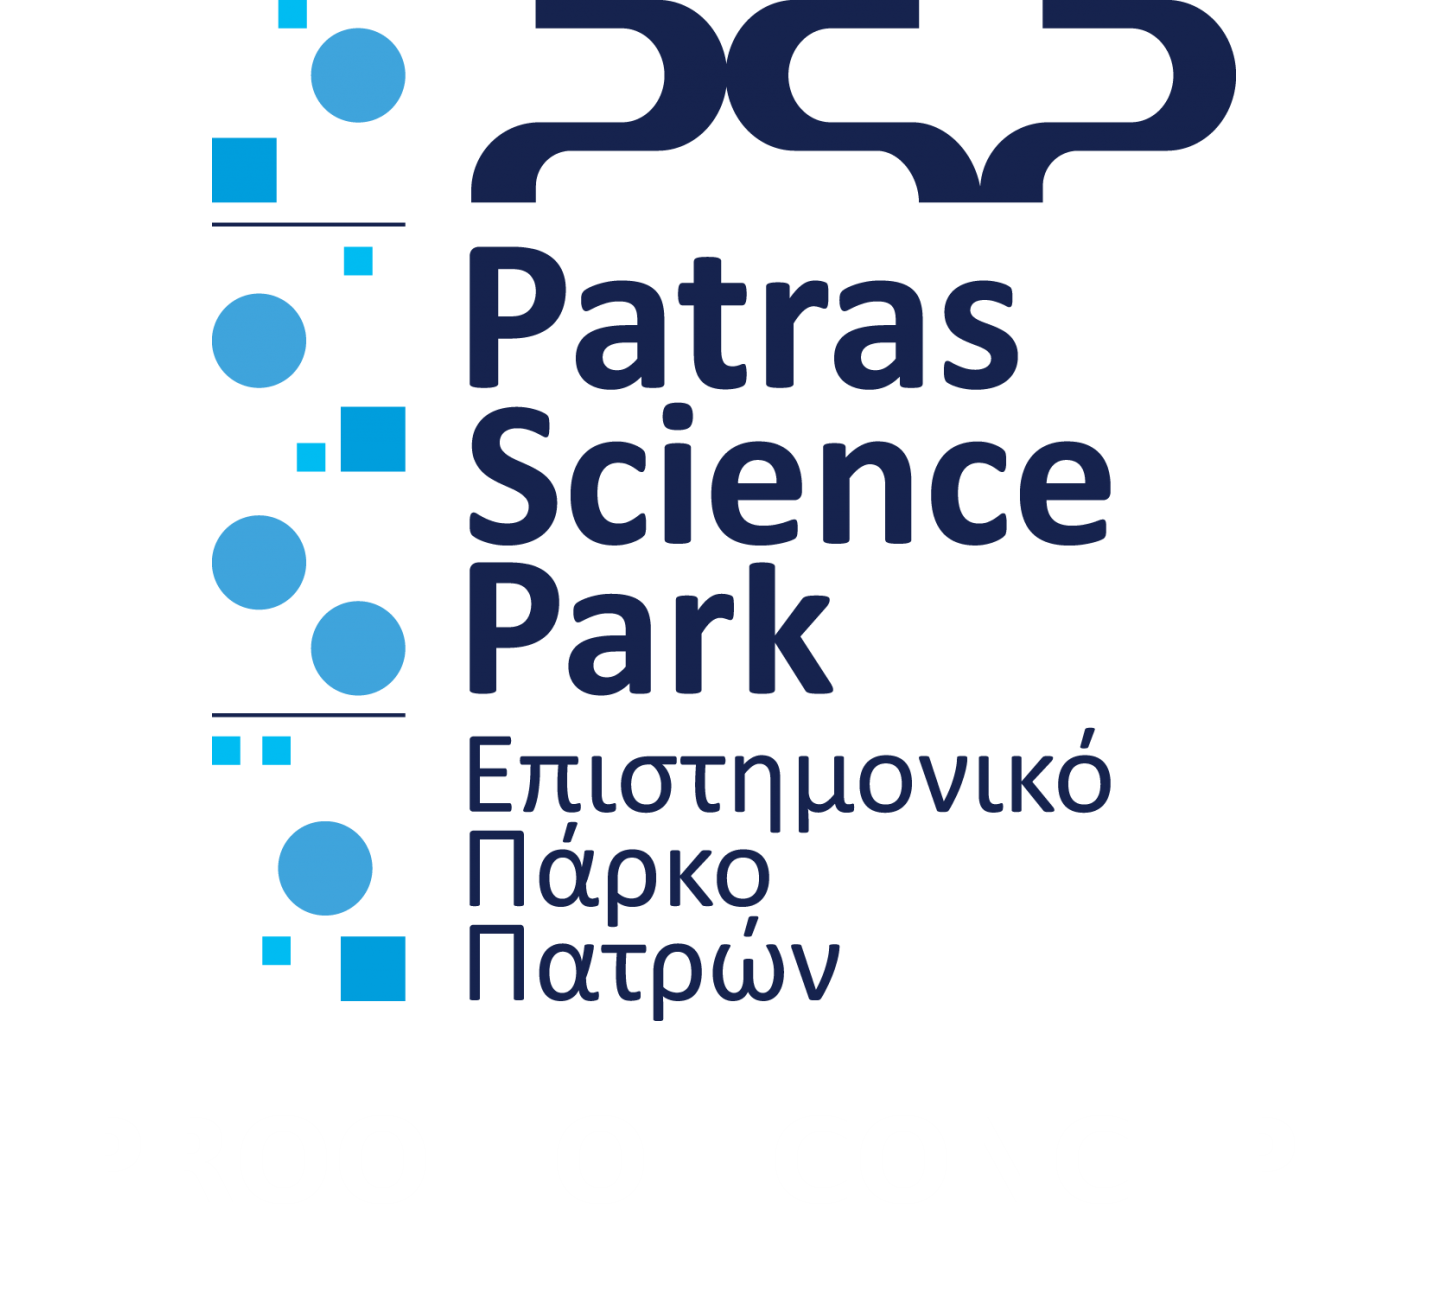 Patras Science Park